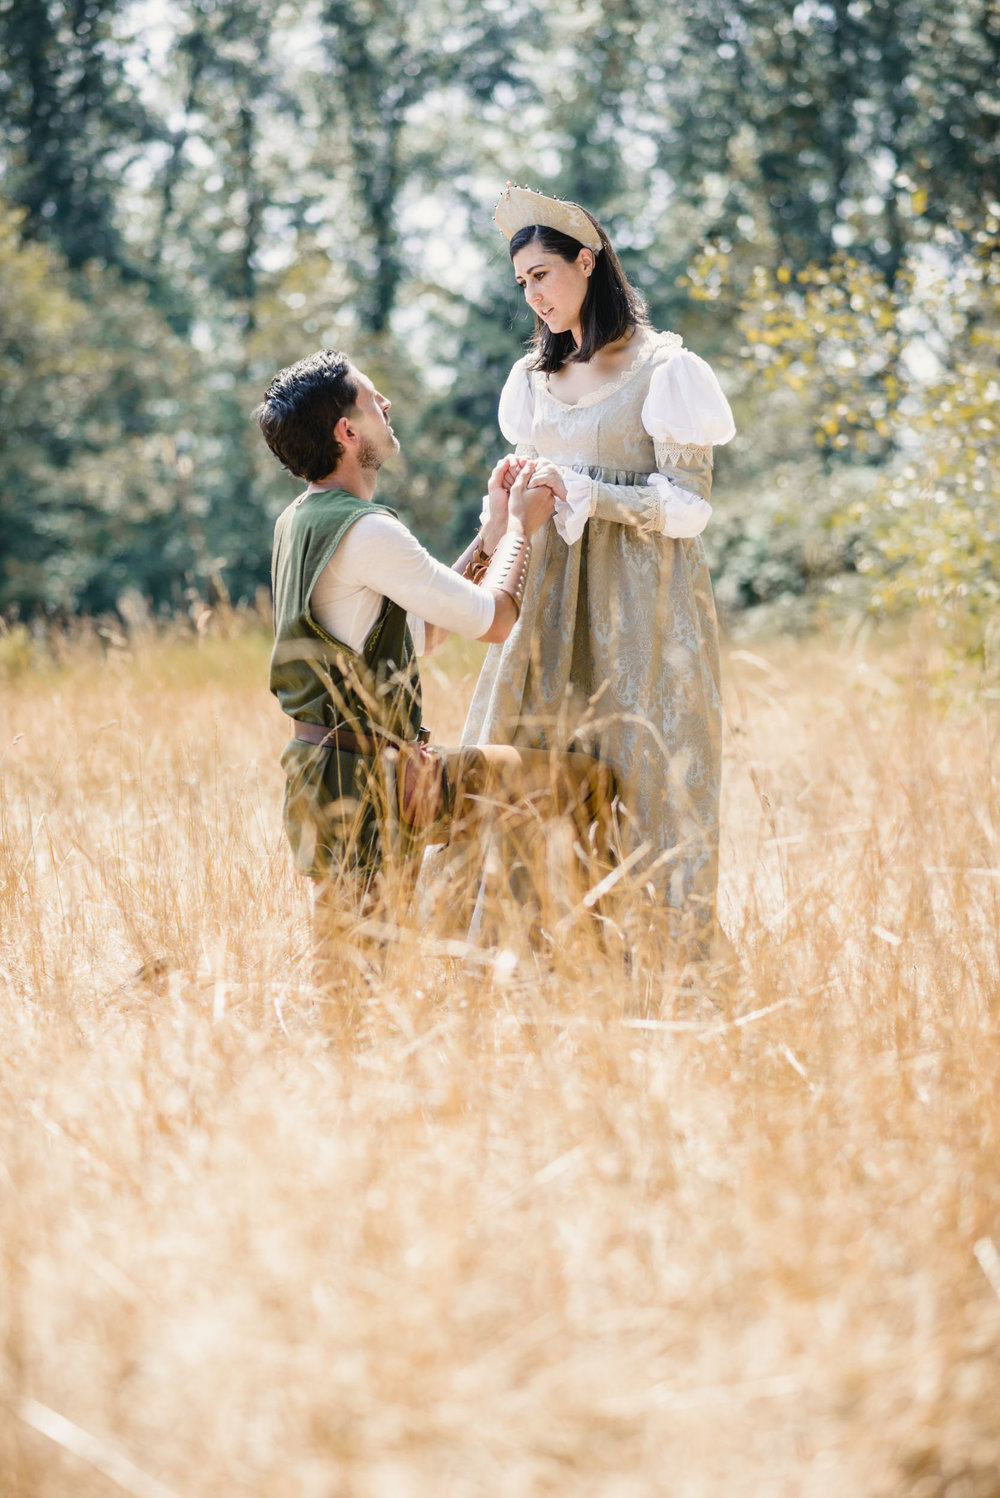 Couple kneeling in field with medieval costumes